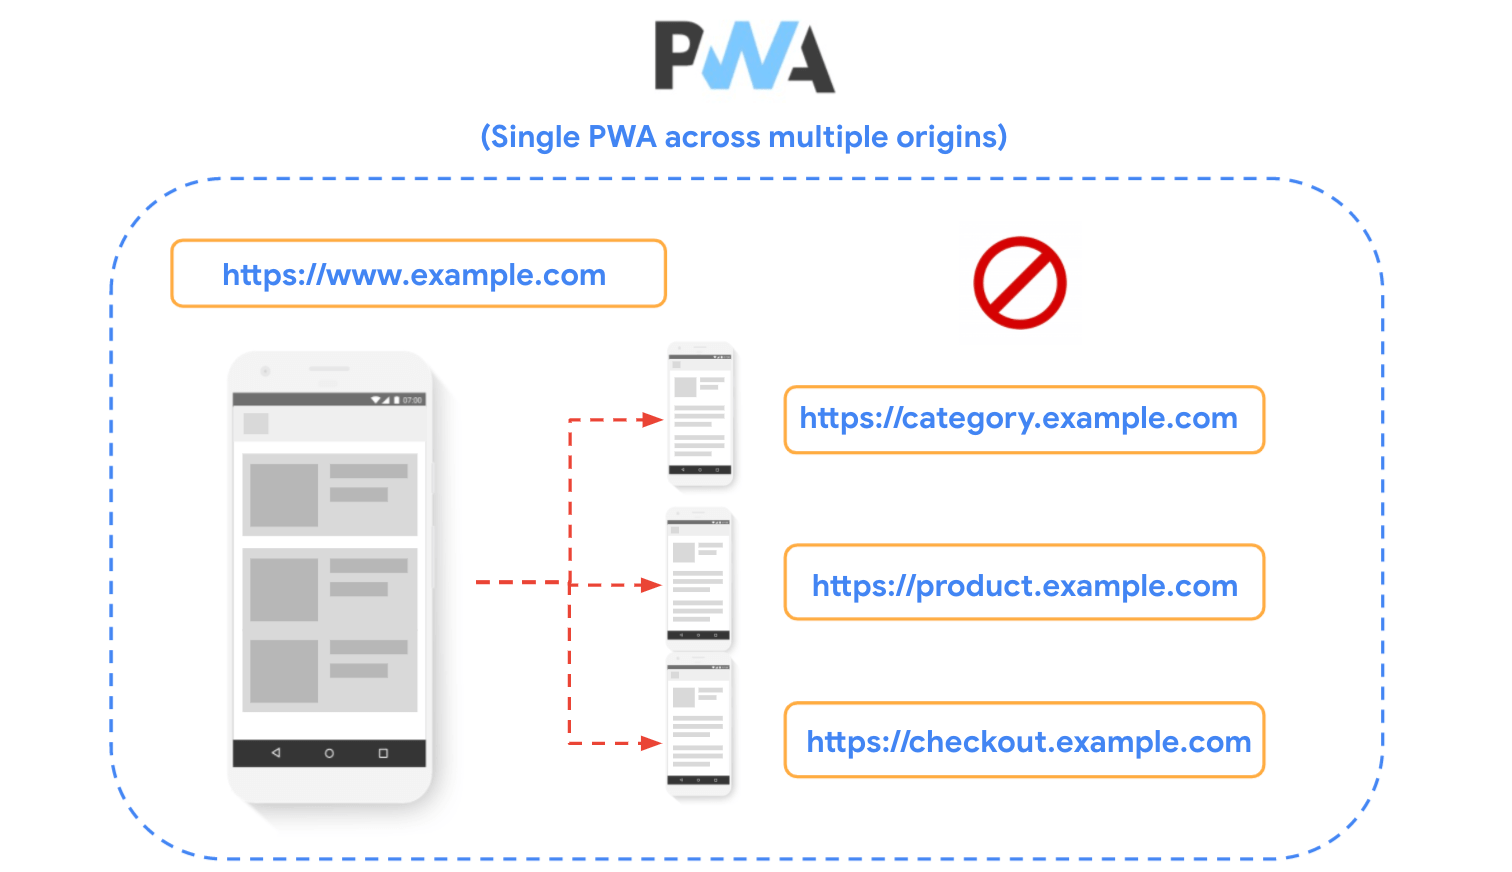 Diagram showing a site divded into multiple origins and showing that technique is discouraged when building PWAs.